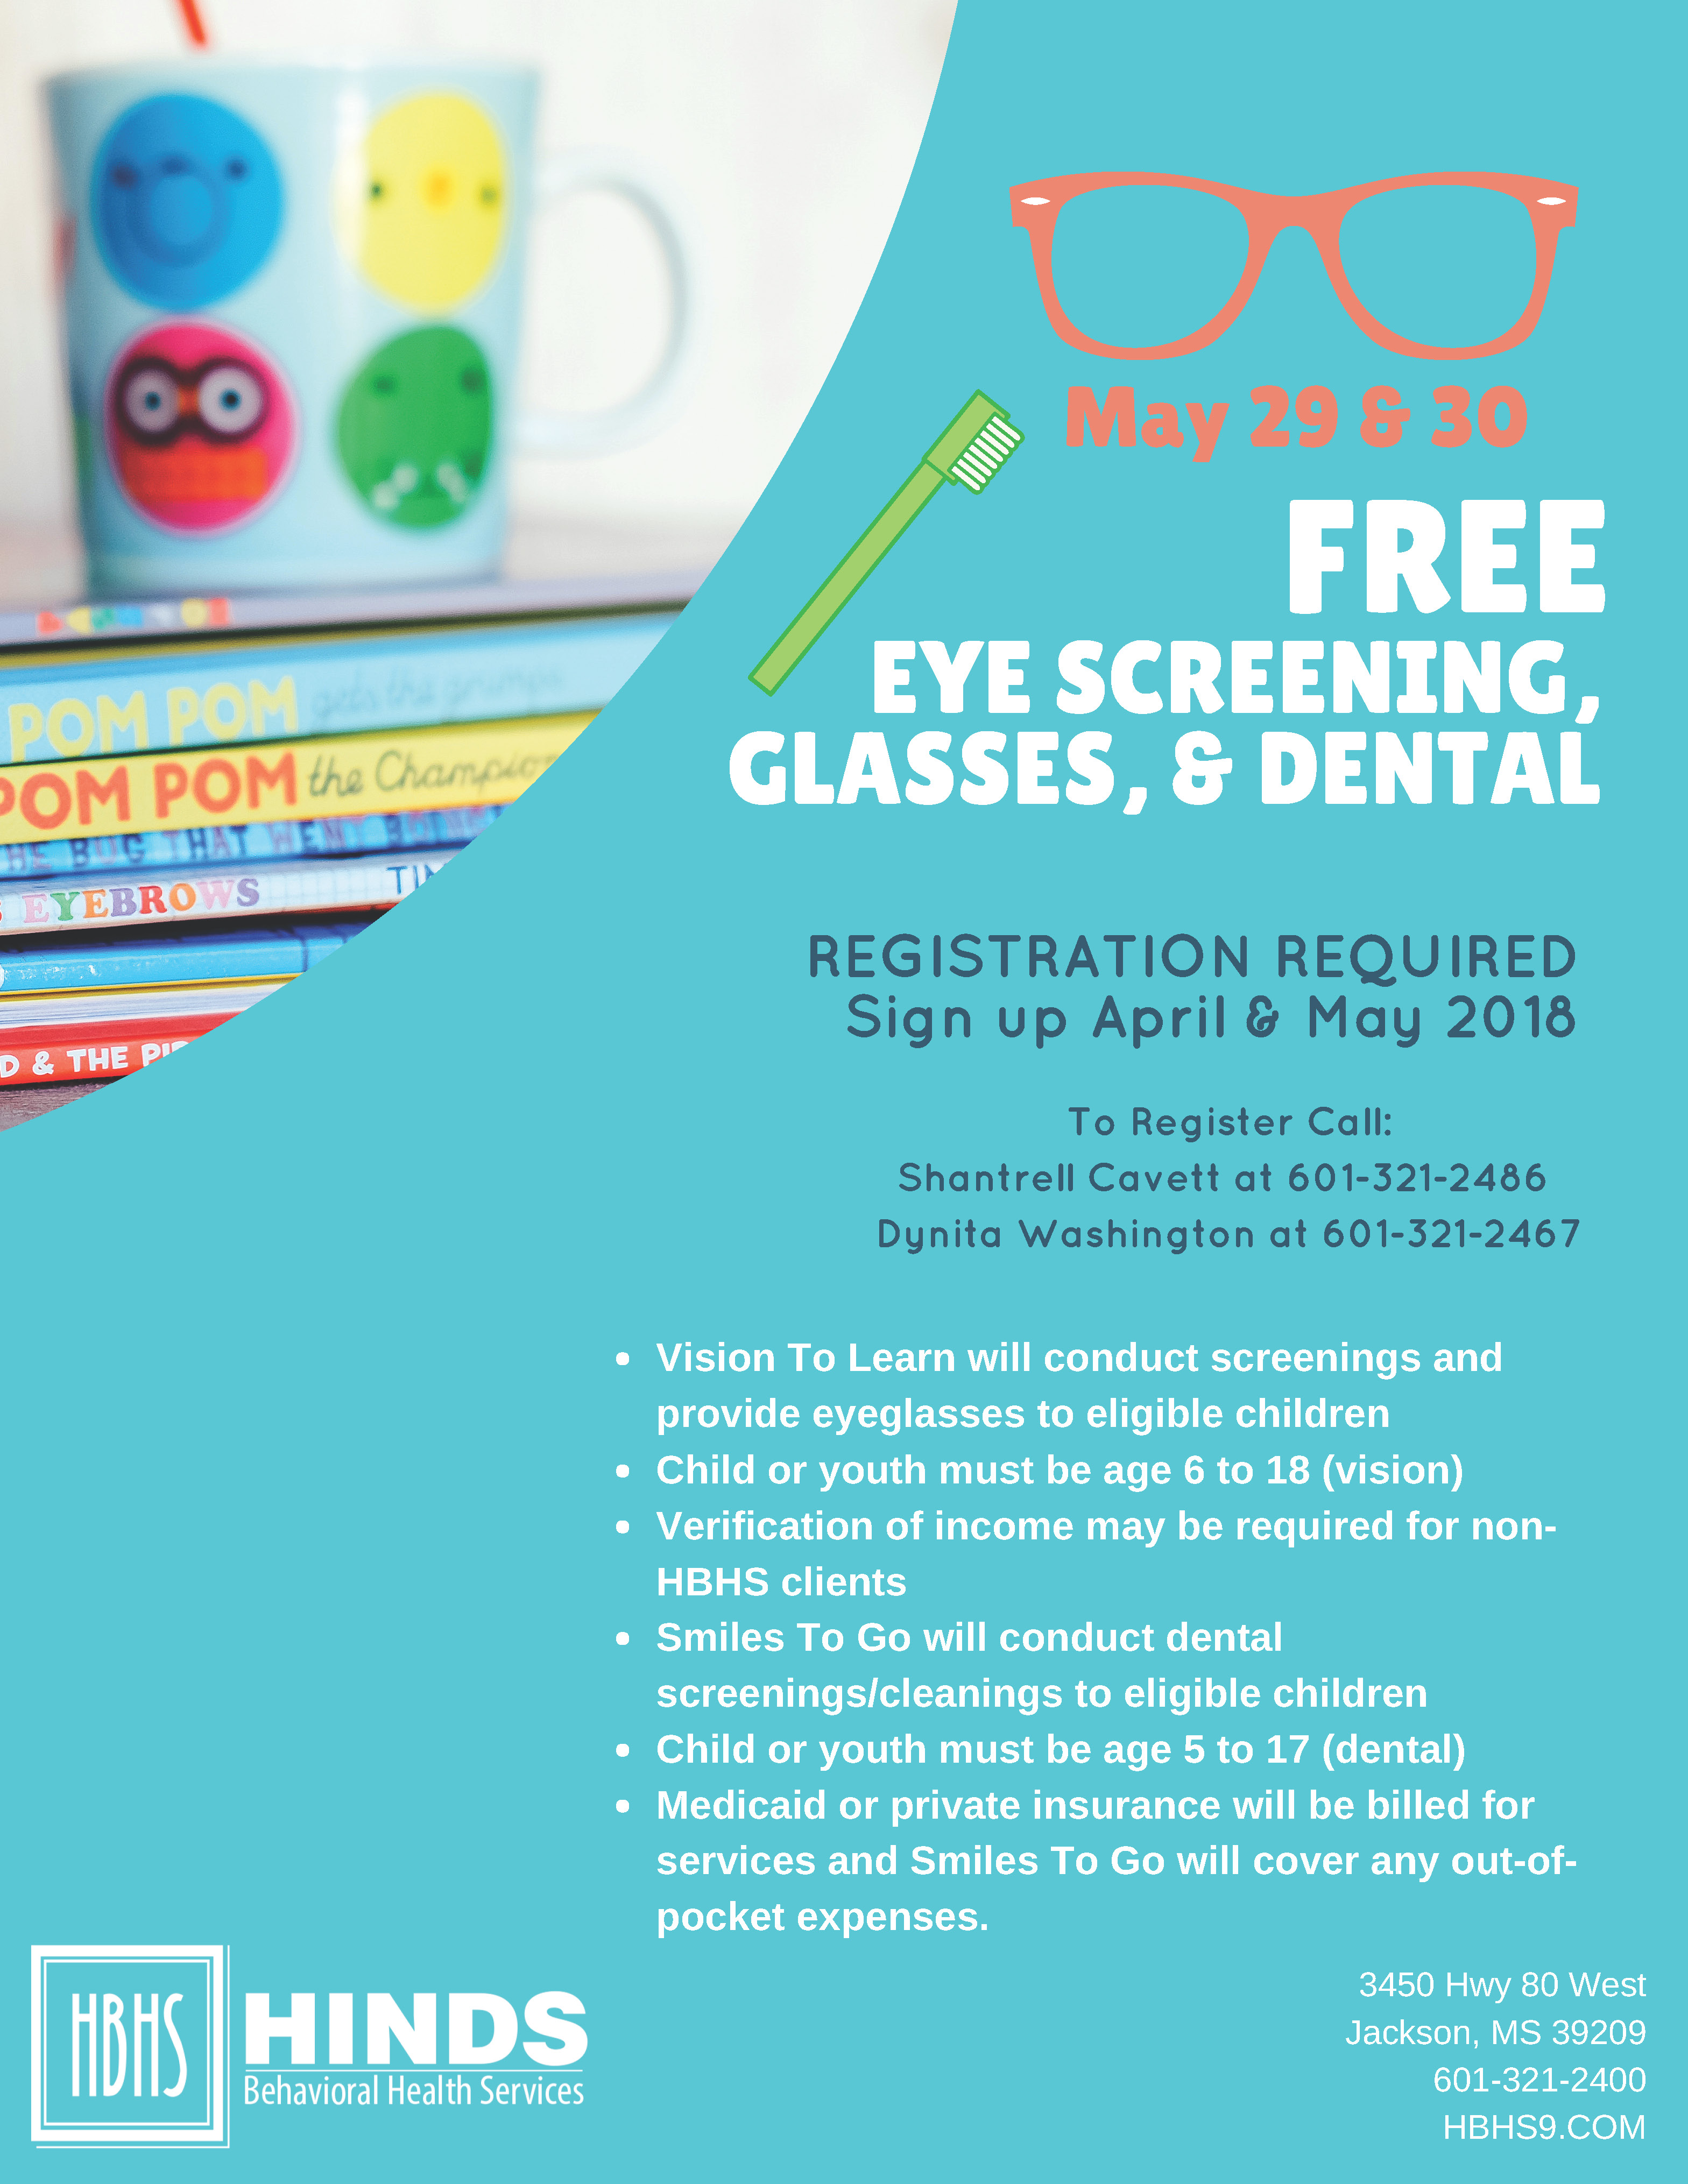 b6c05df63a9 Visit Hinds Behavioral Health Services on May 29th and 30th for free vision  screenings